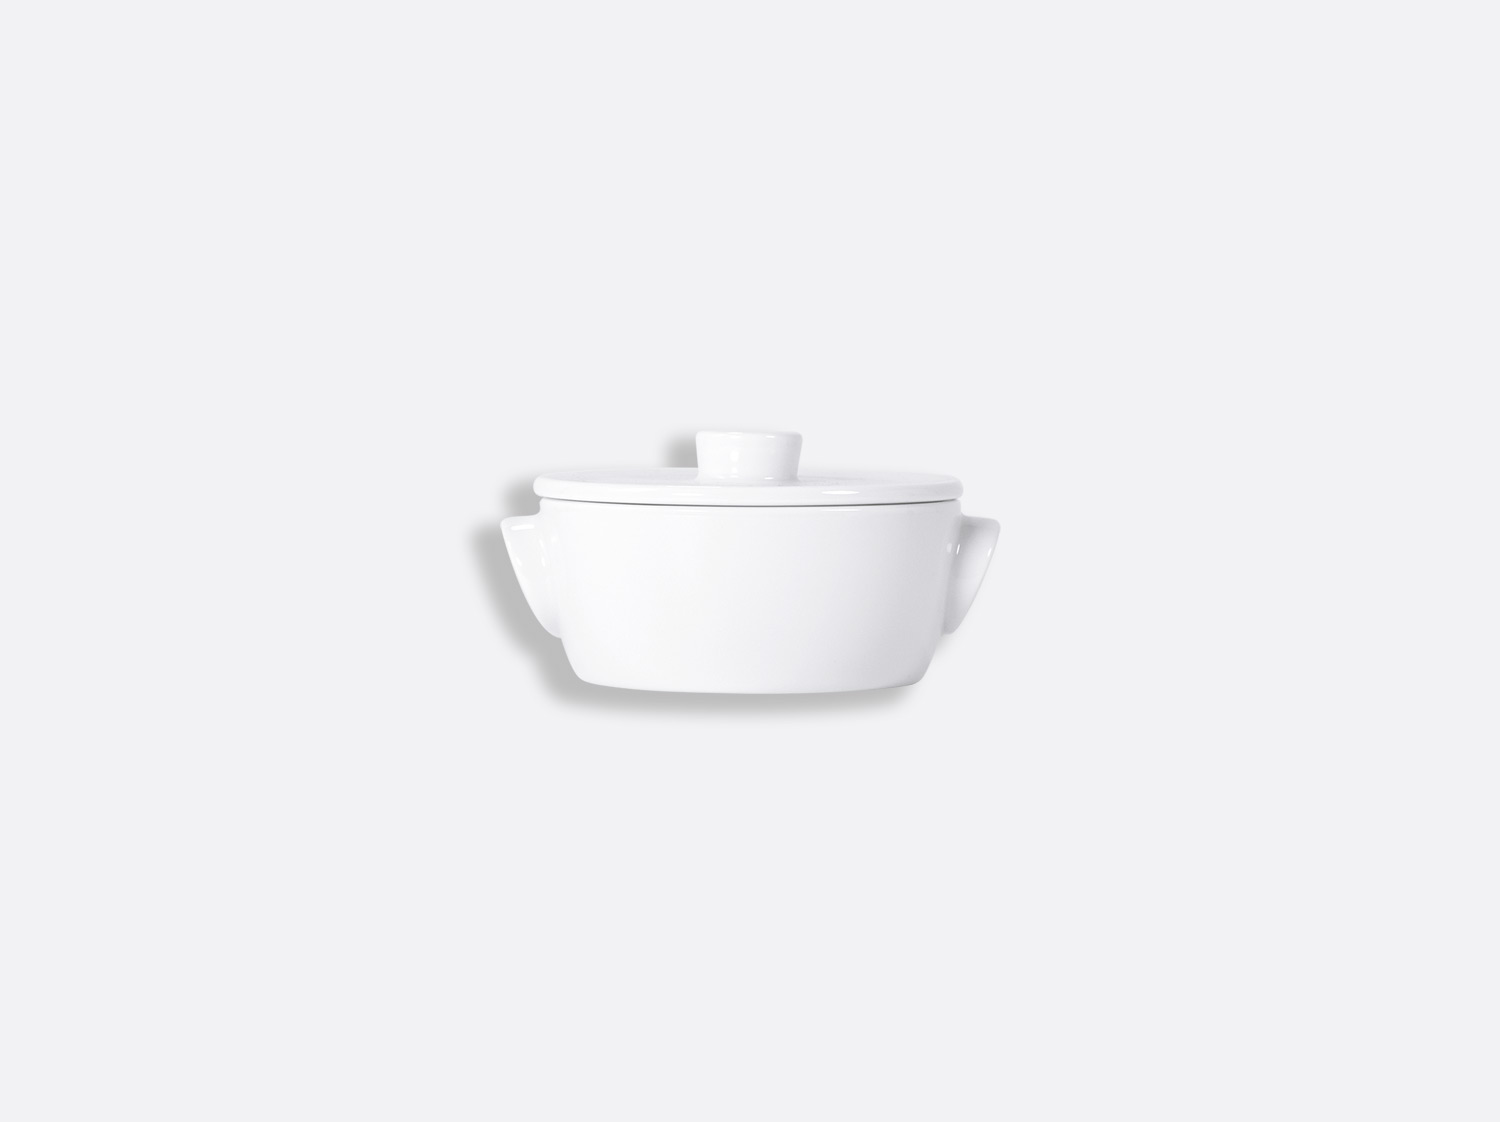 "China Tureen 4"" of the collection BIARRITZ 